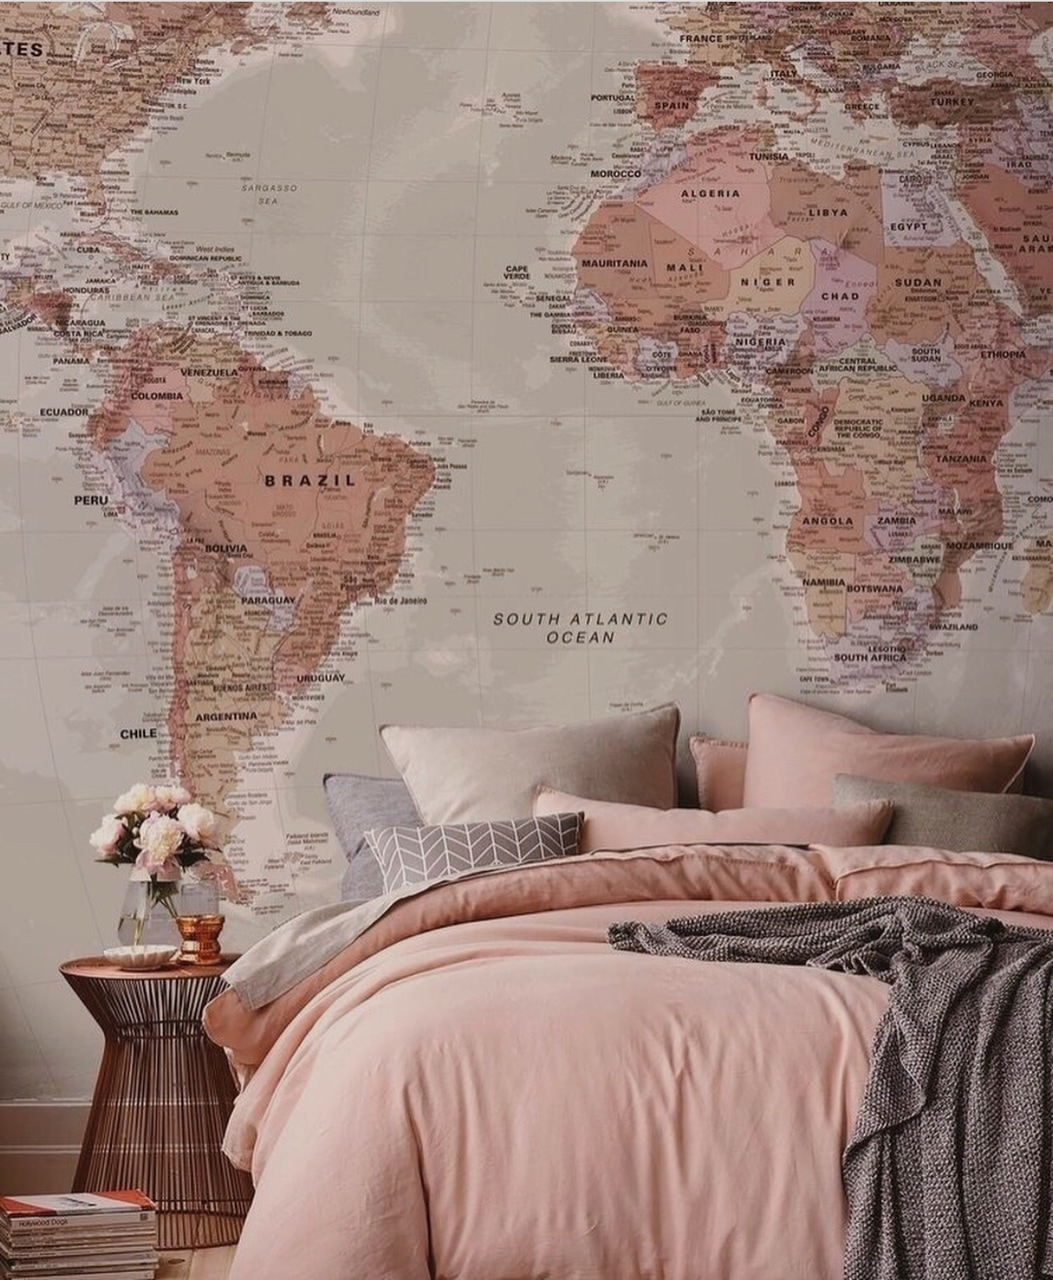 world, bed, ocean and map